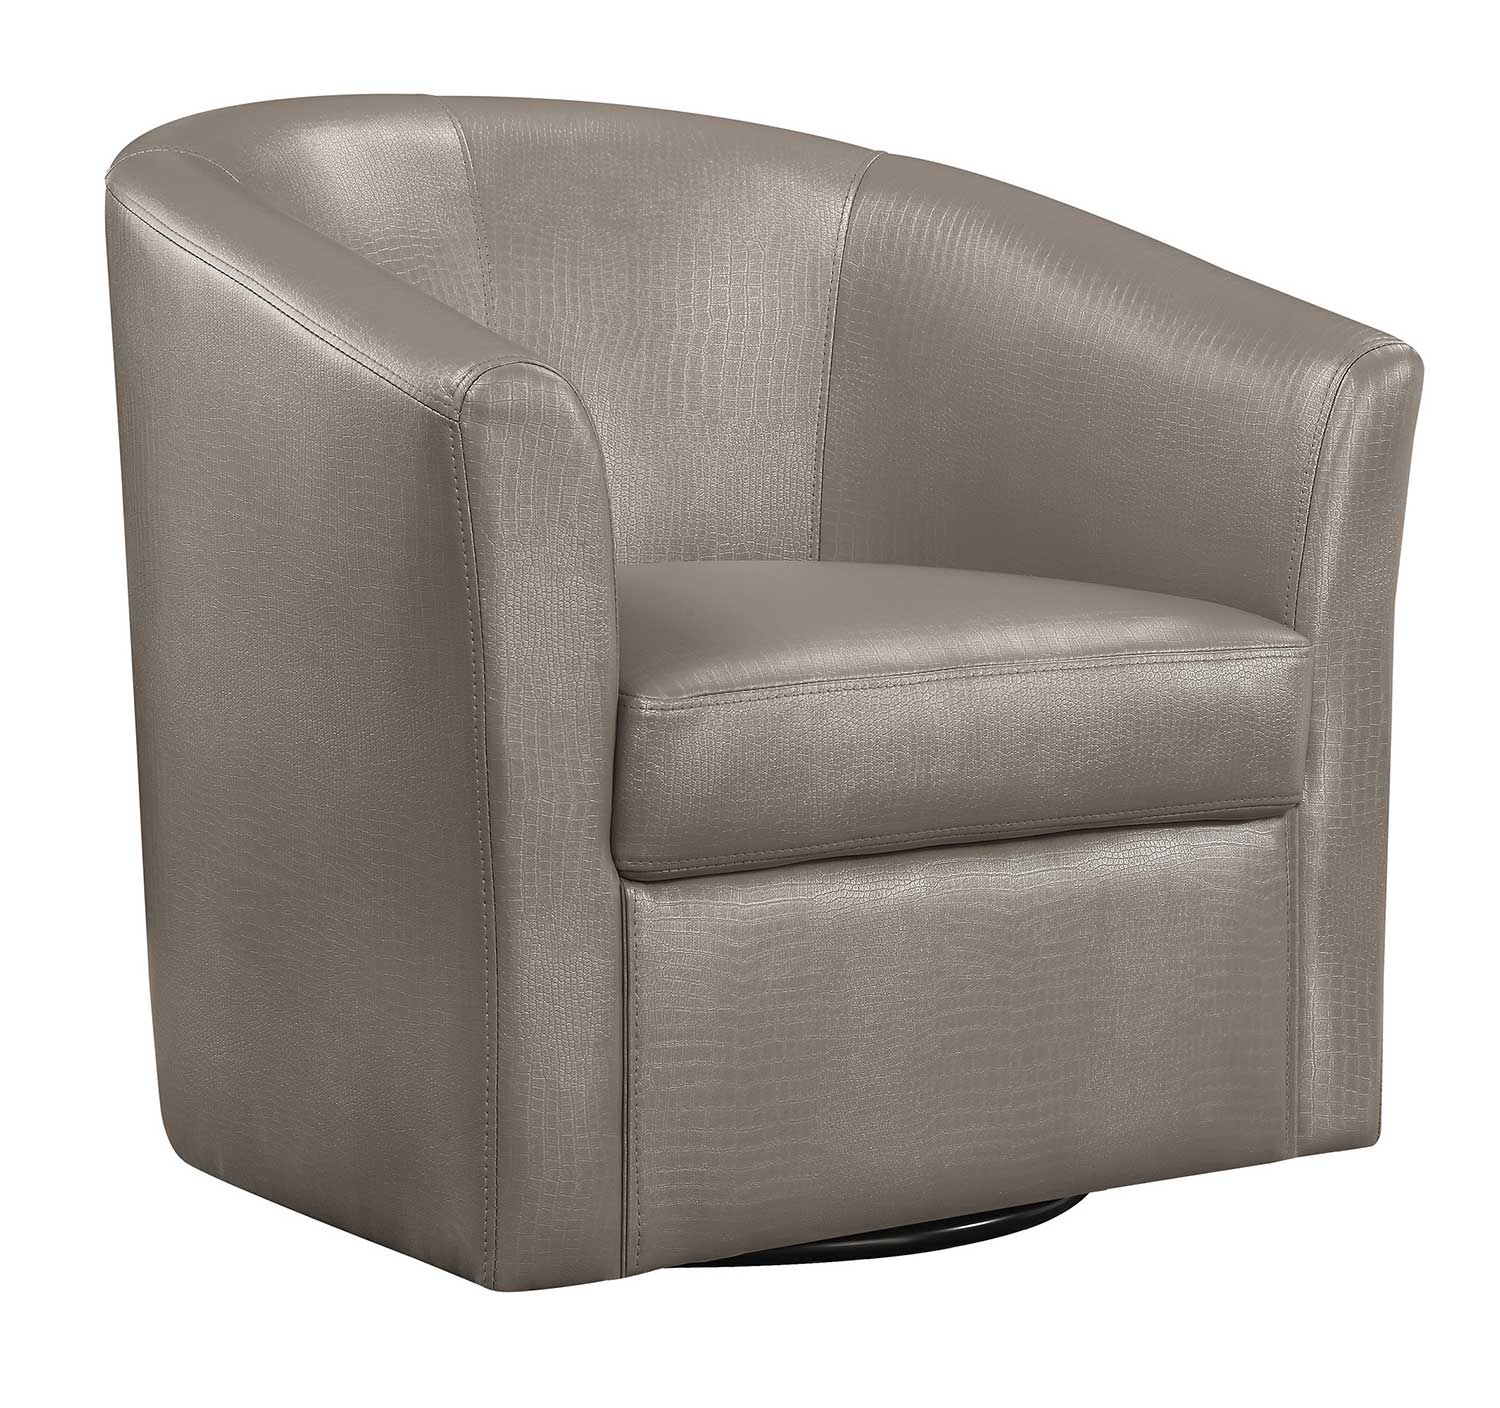 Coaster 902726 Accent Chair - Champagne